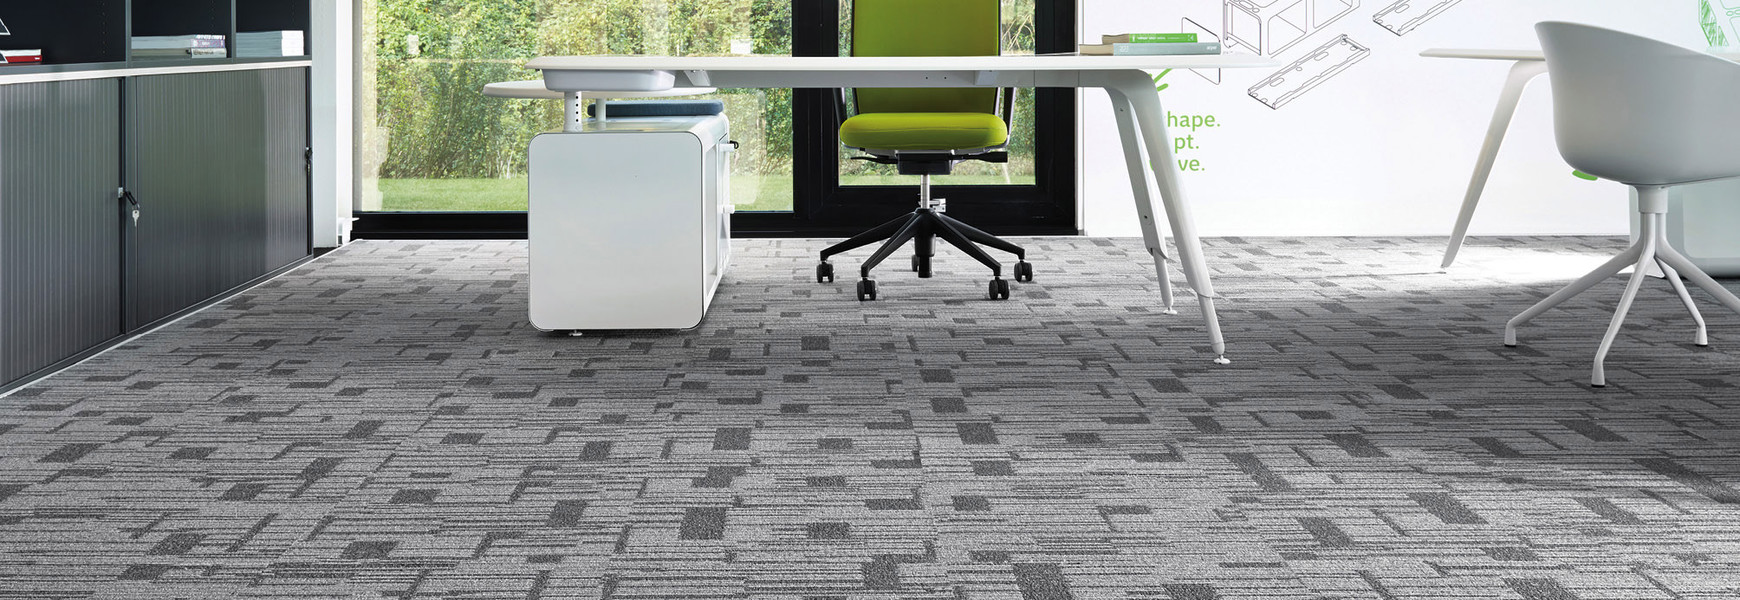 Balta Carpets Lct Luxury Carpet Tiles